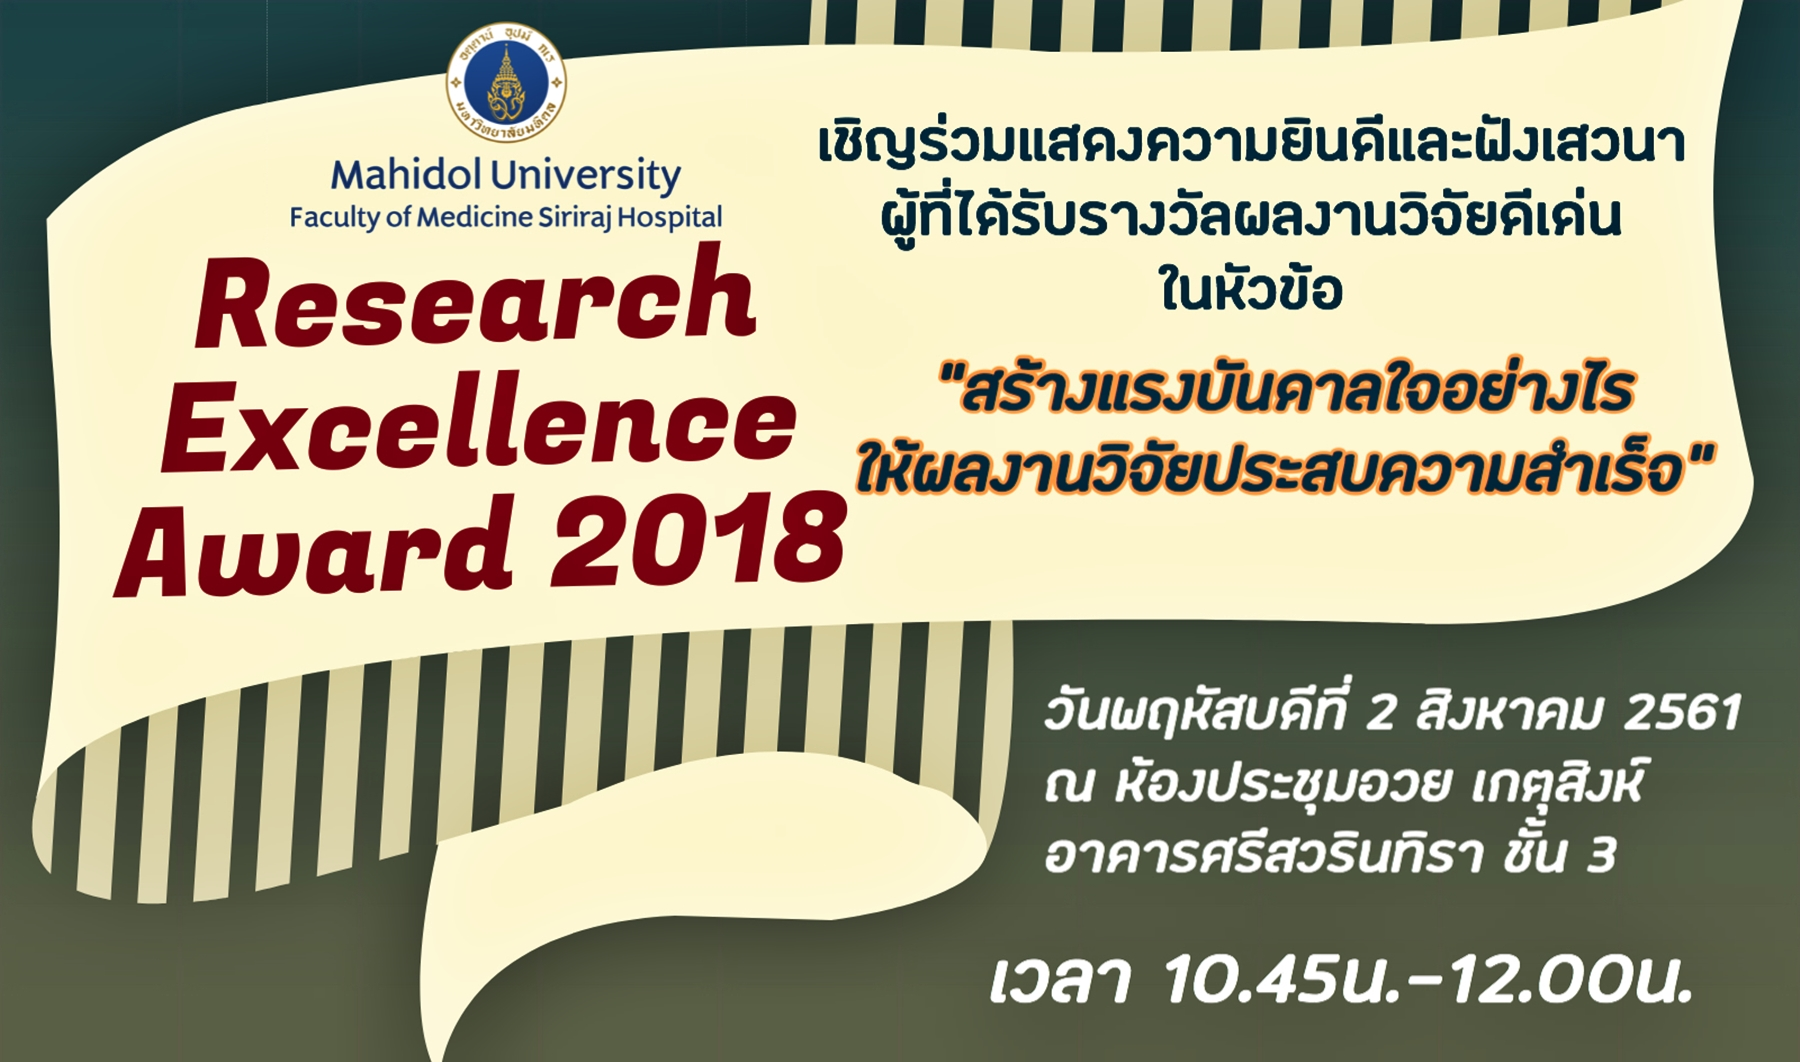 Research Excellence Award 2018